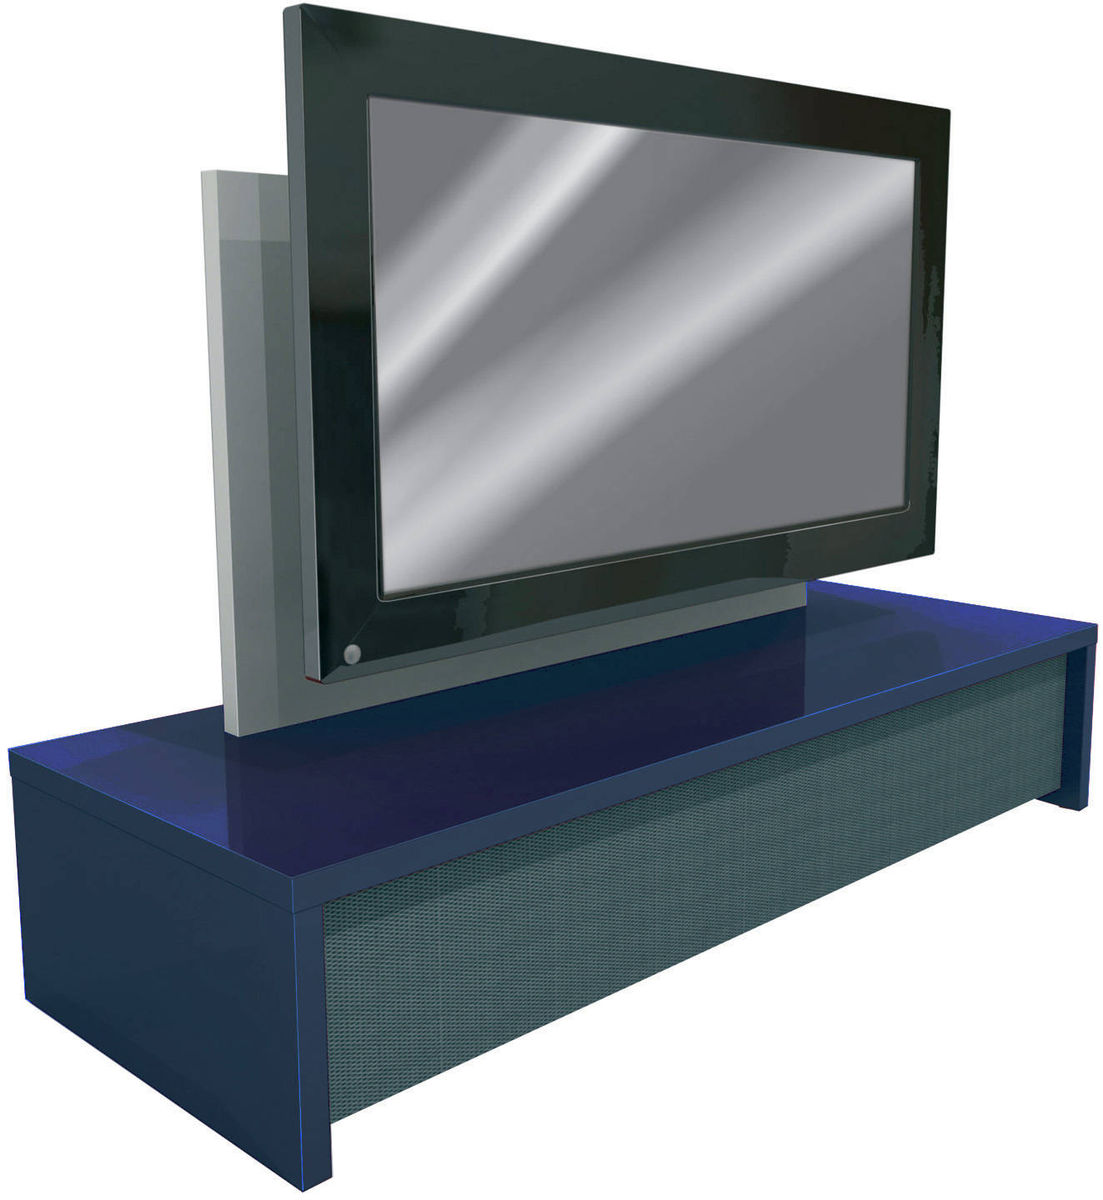 Meuble Tv Philips Trendy Philips Sts With Meuble Tv Philips  # Photos Catalogues Table Tv Ecrans Plat